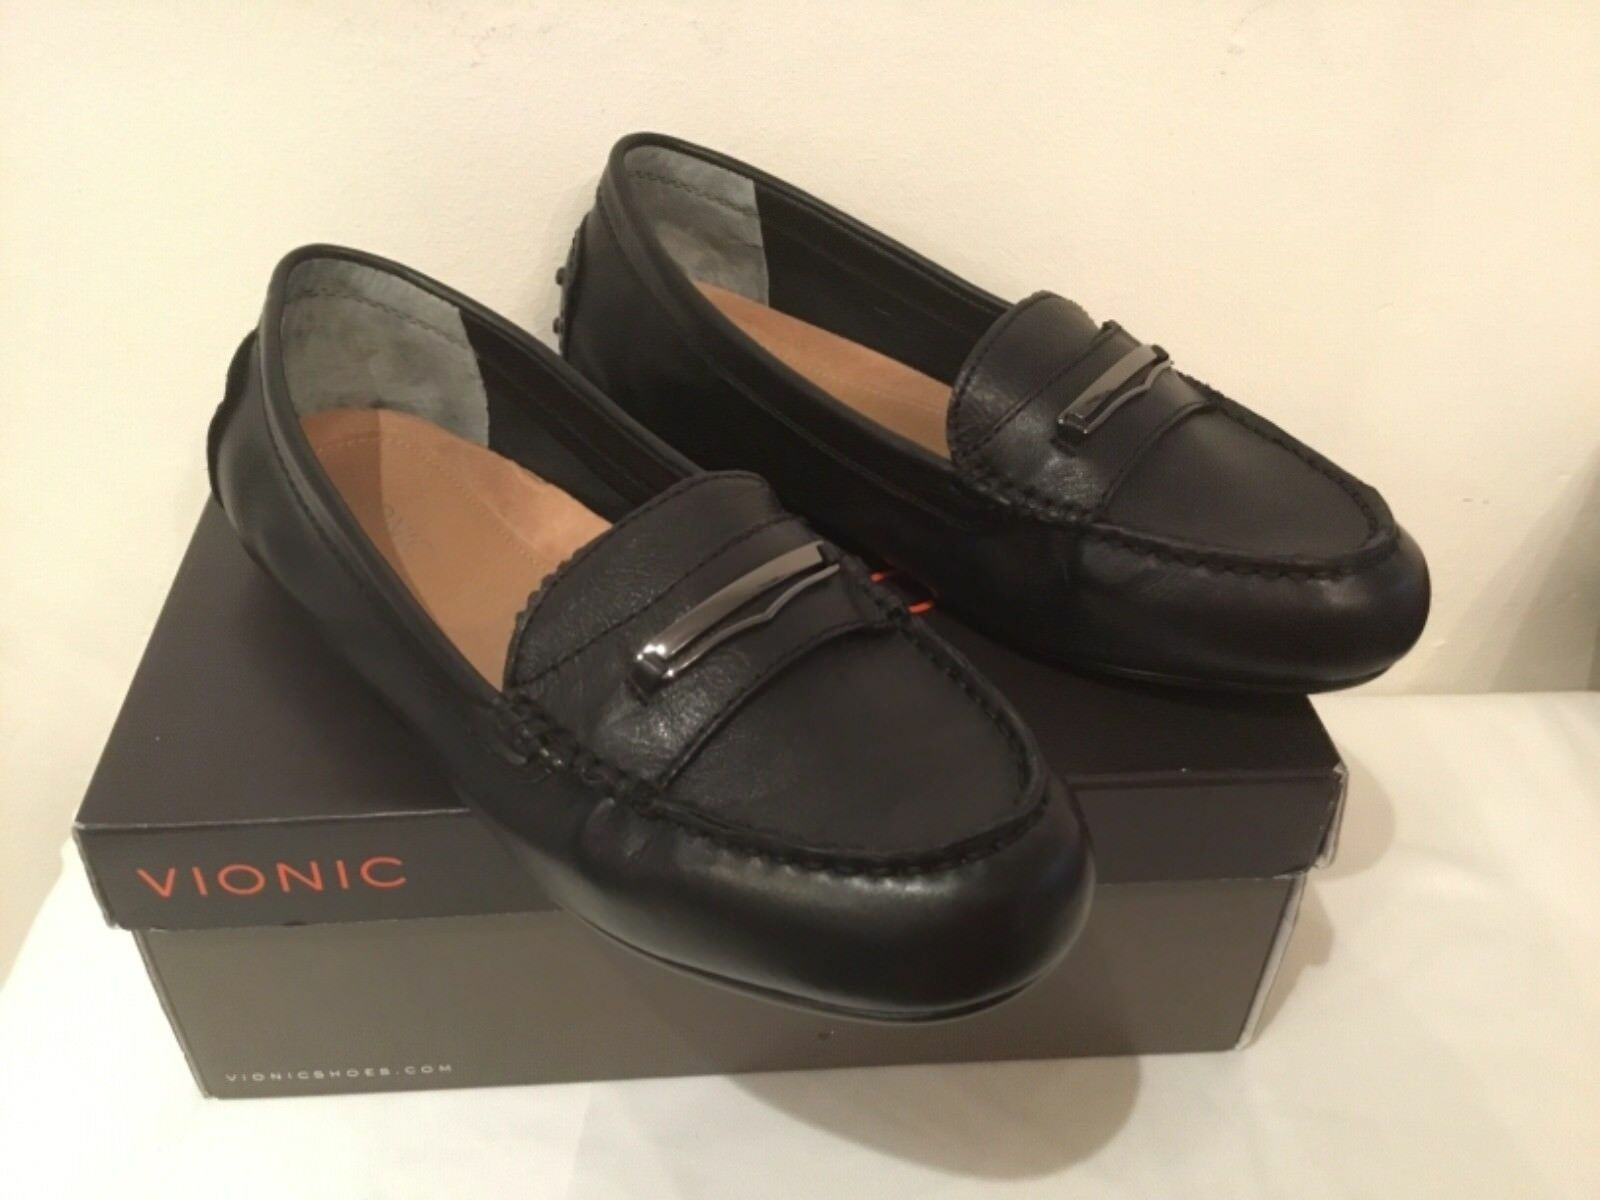 Vionic Orthotic Honor Ashby Leather Loafer w/ FMT Technology- choose a colour